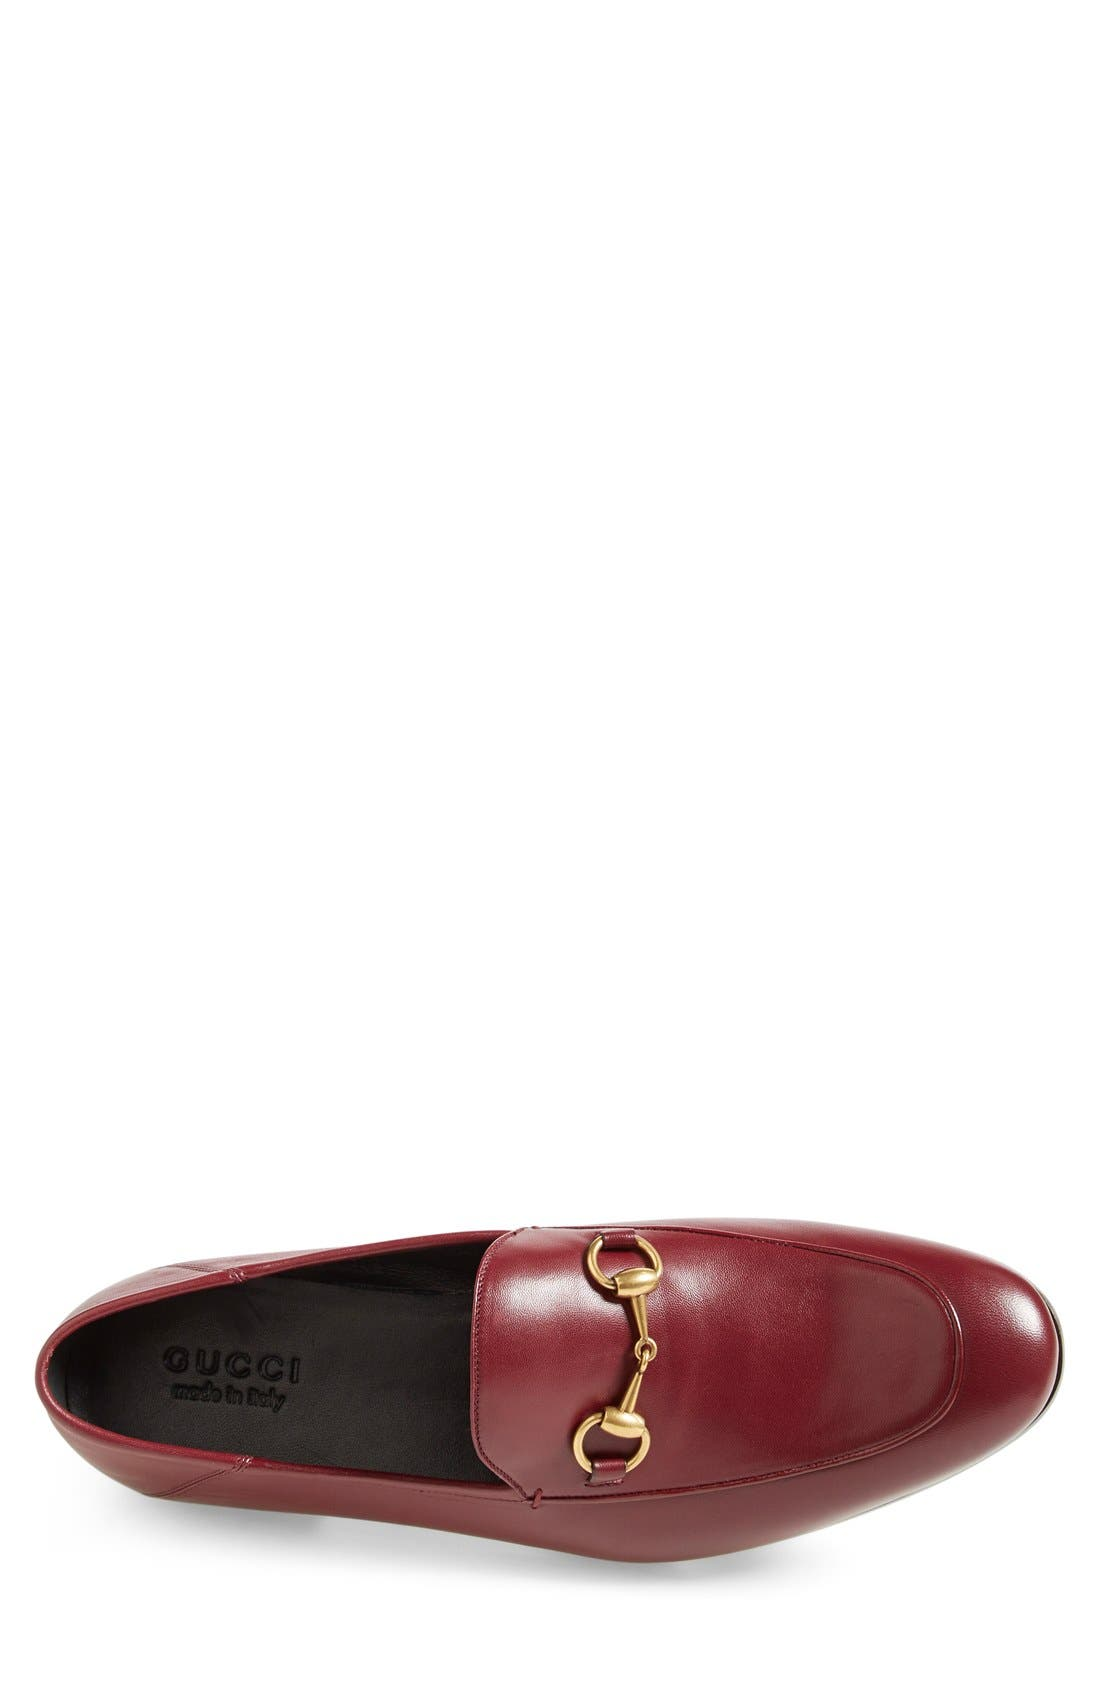 Brixton Leather Loafer,                             Alternate thumbnail 14, color,